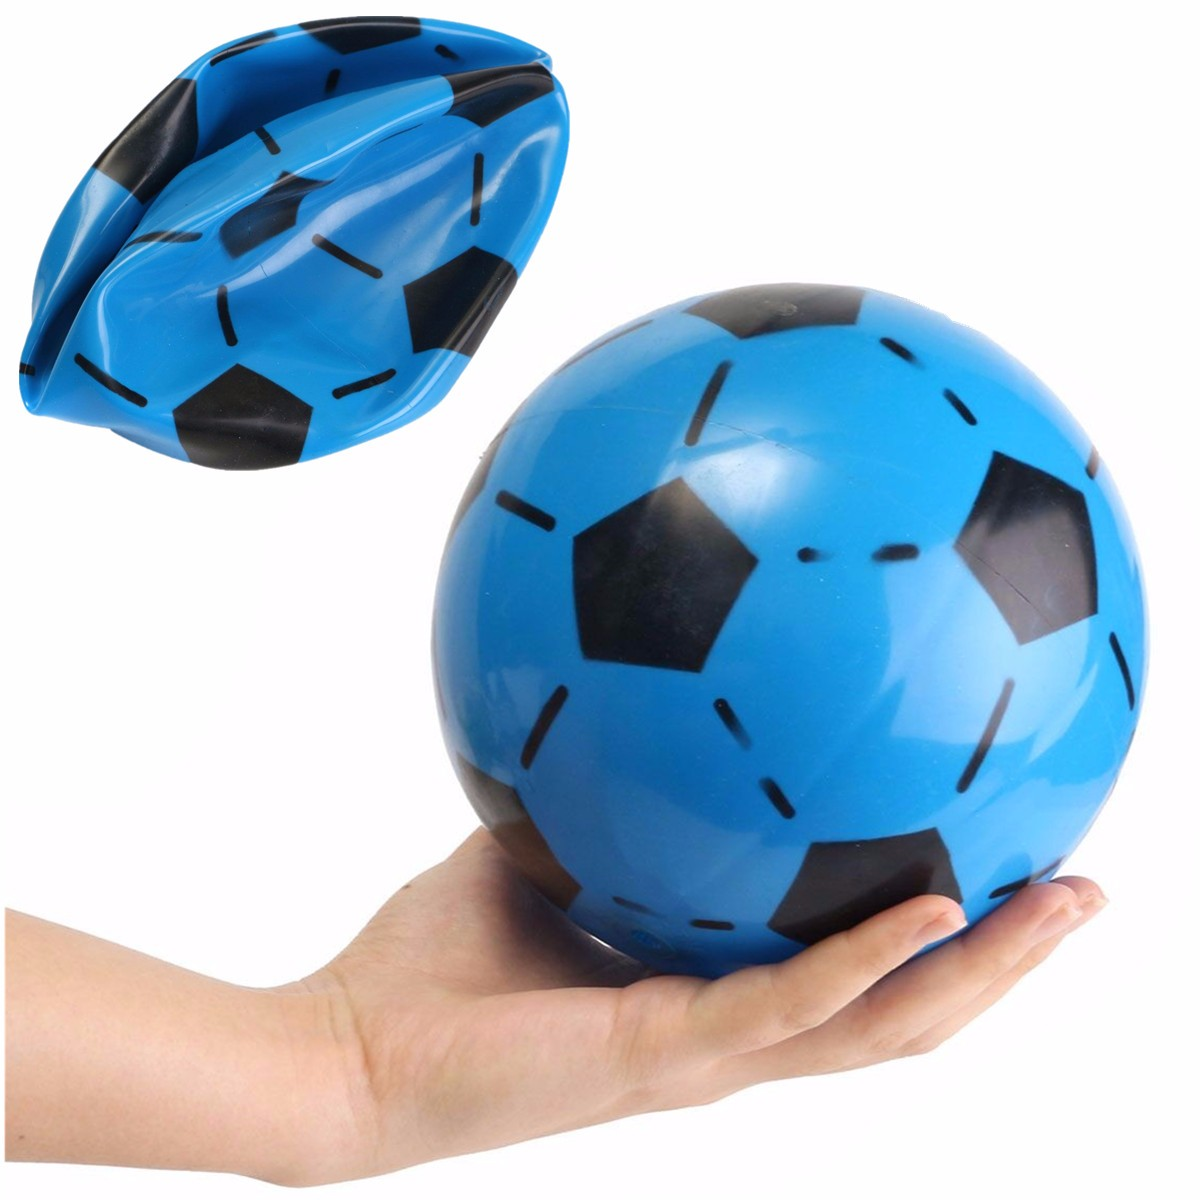 15cm 5.91'' PVC Inflatable Football Soccer Kids Toy Swimming Pools Summer Outdoor Beach... by